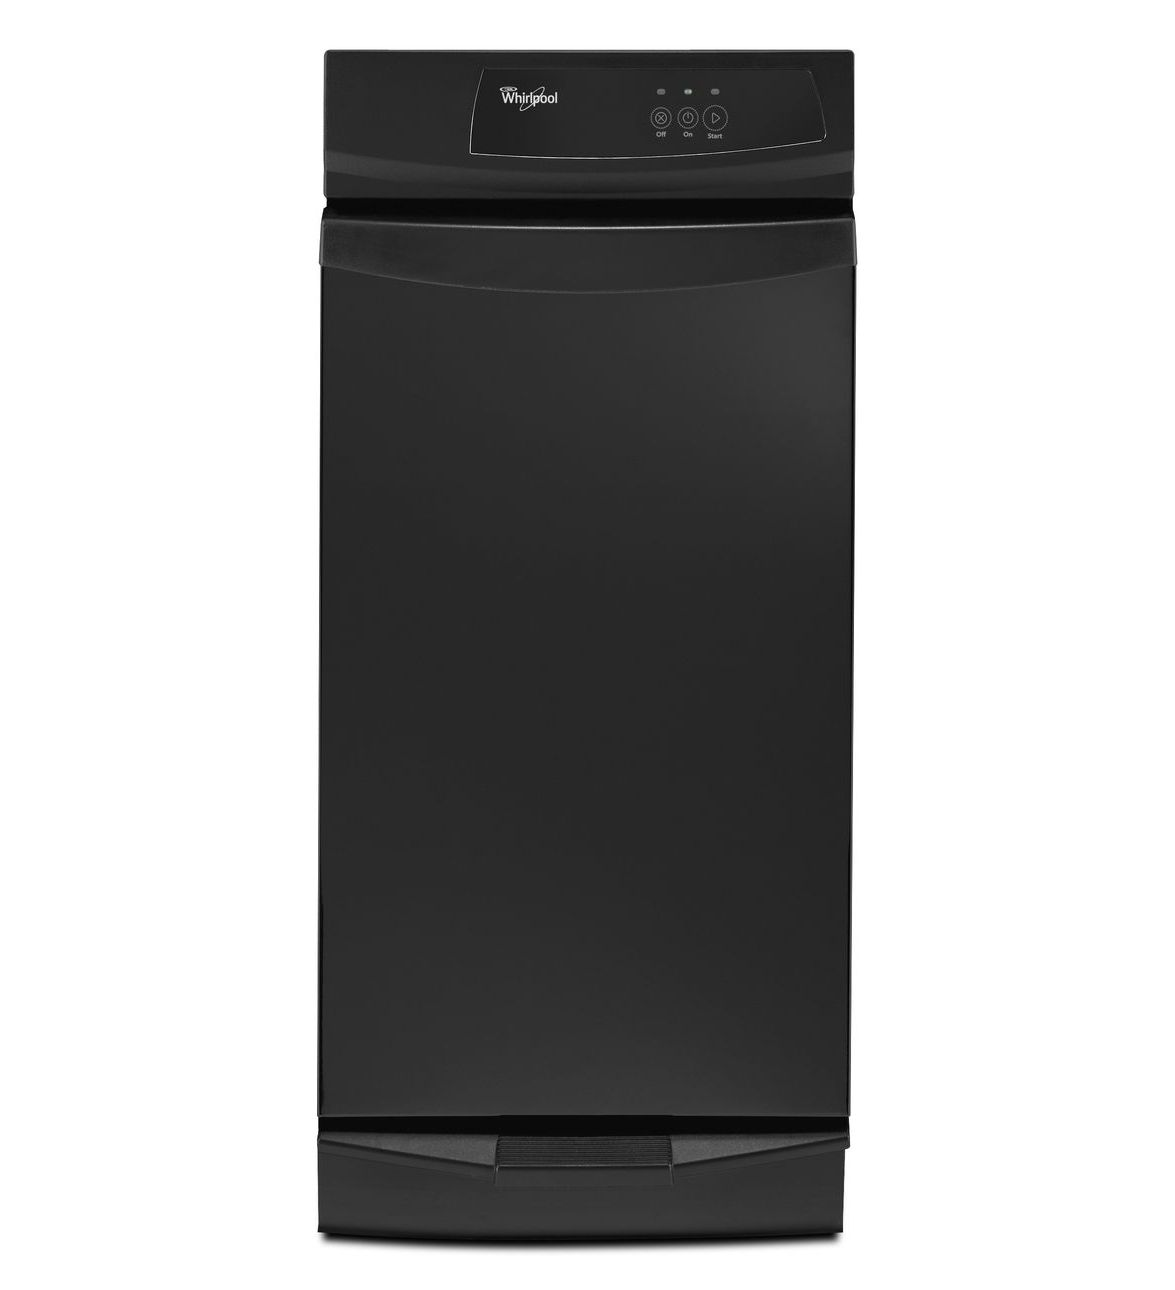 Whirlpool Trash Compactor GC900QPPB - Reviews, Prices, Deals ...